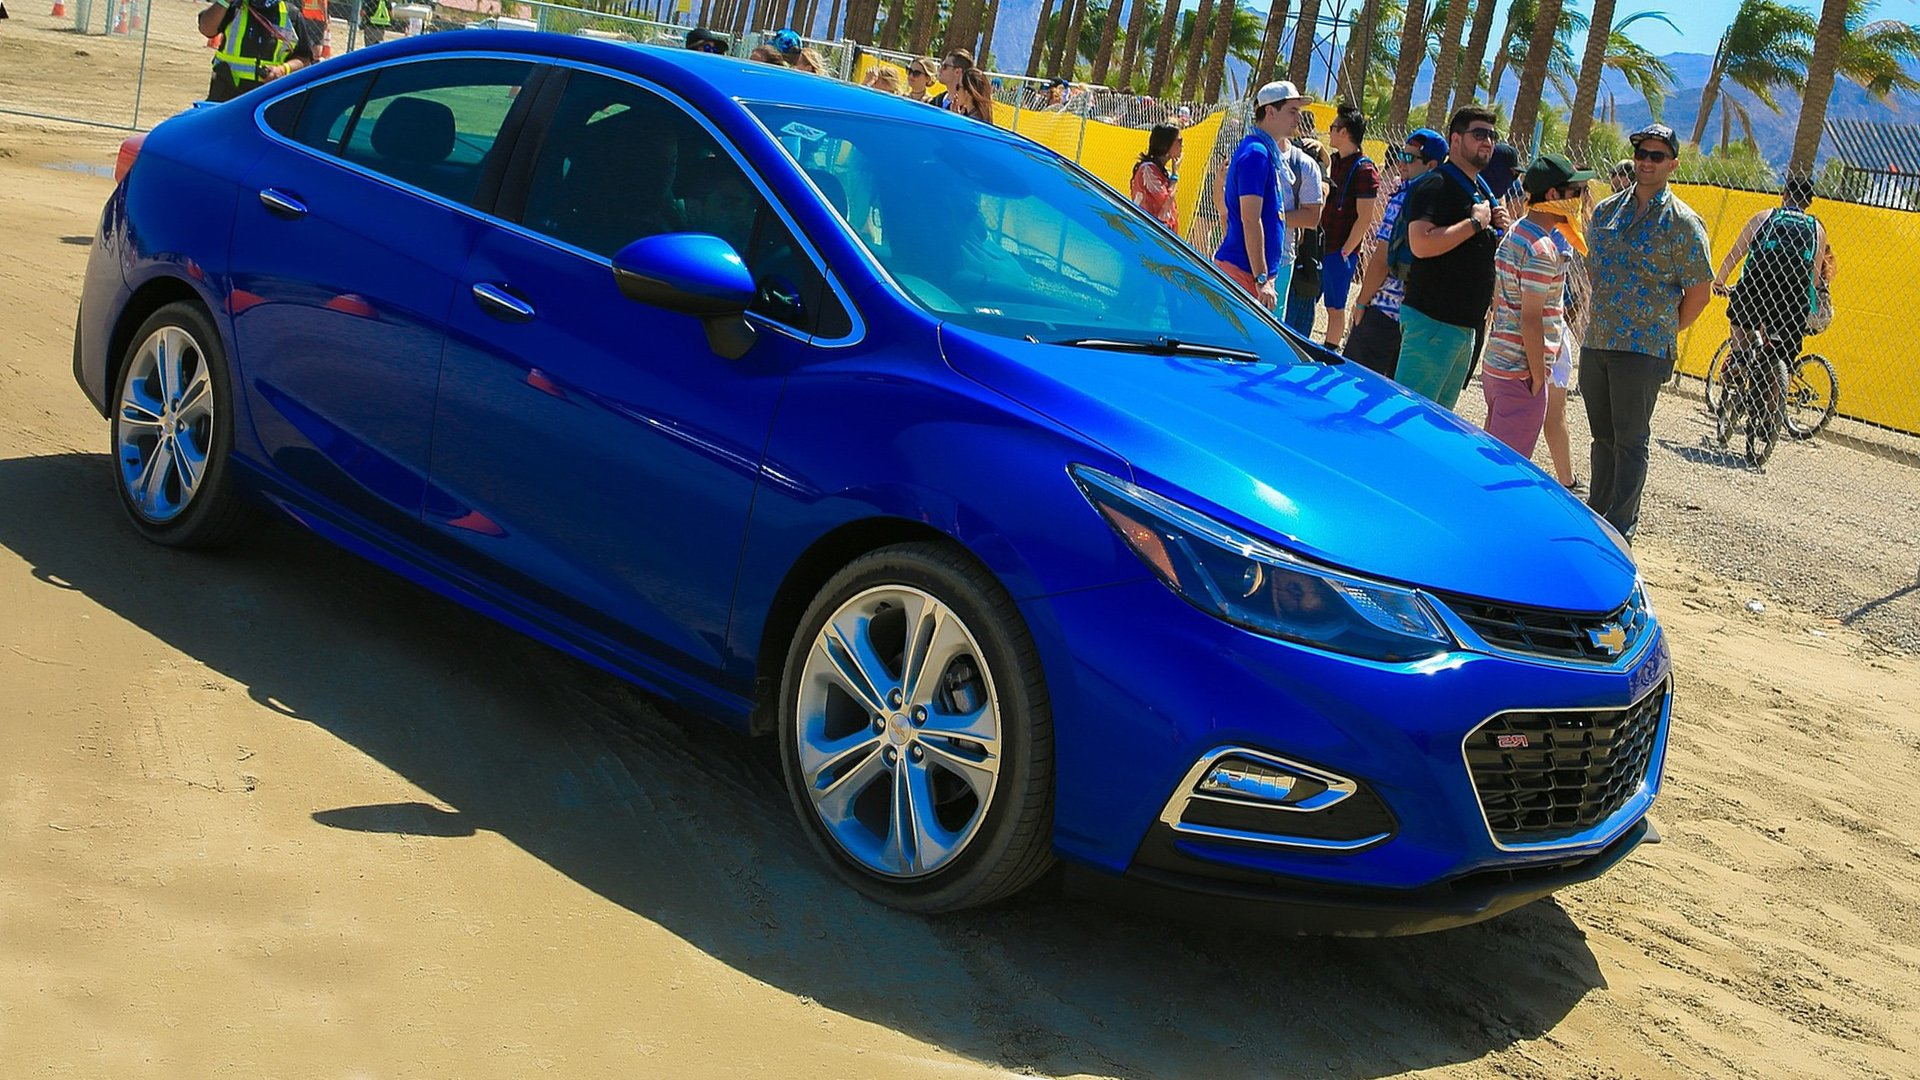 Chevrolet Cruze Photo Gallery Full HD